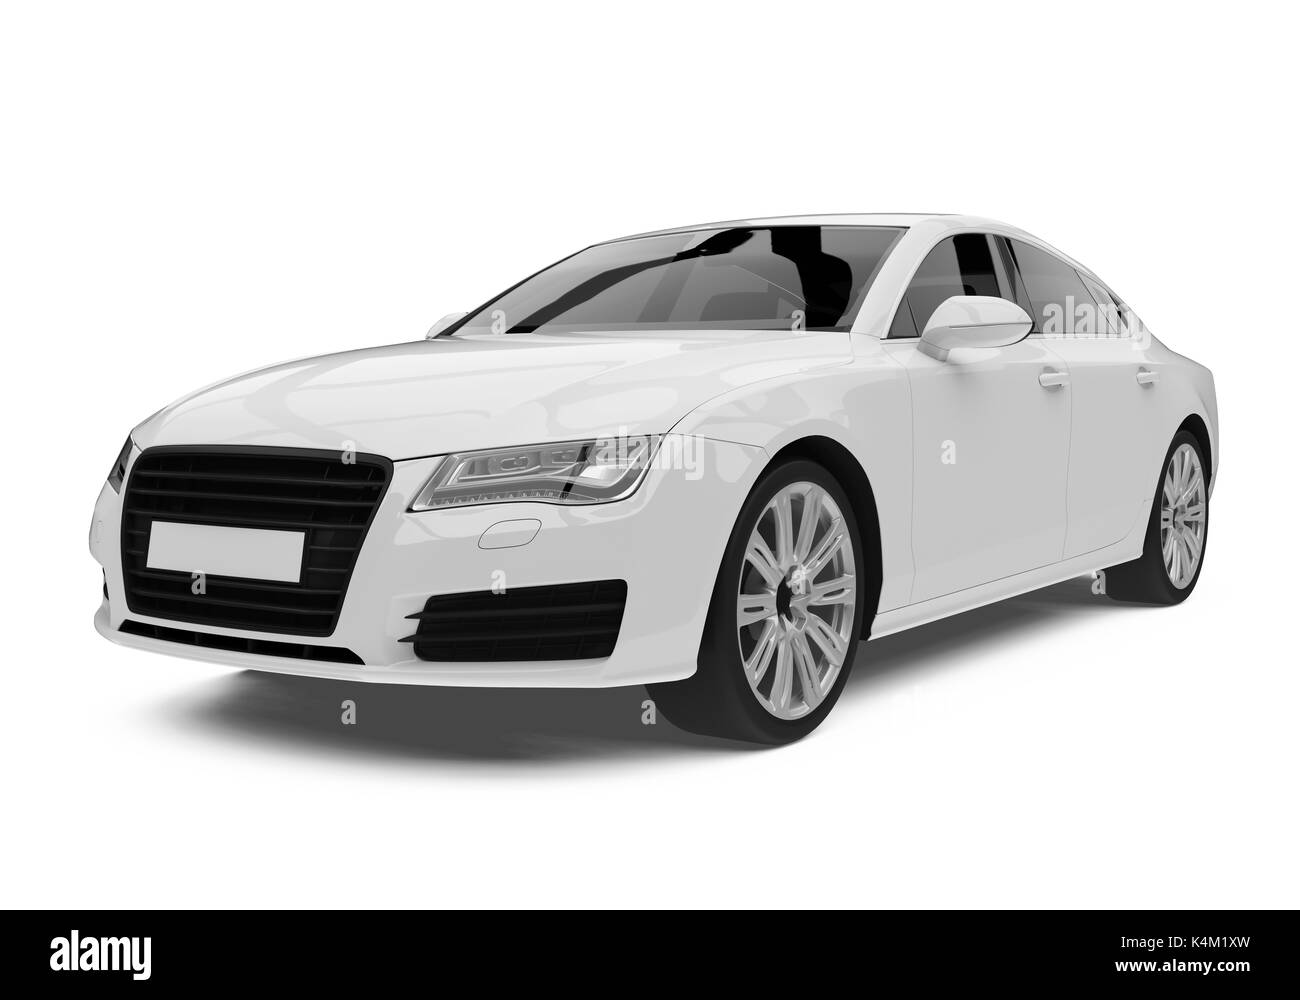 White Sedan Car Isolated - Stock Image